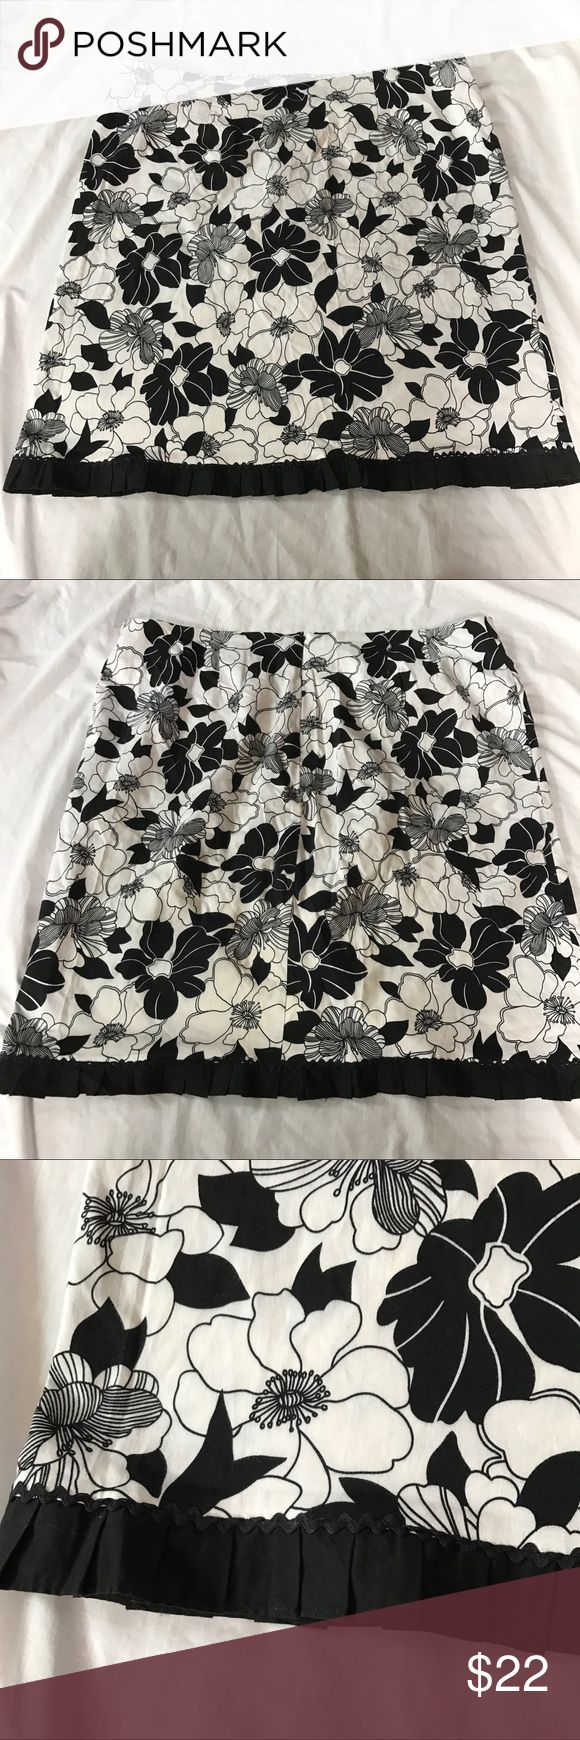 Black and White Floral Skirt Lovely full skirt with big floral designs in high contrast black and white. There is a black strip of fabric along the hem, see close up photo for detail. EUC.   |✅20% Off Bundles| |✅Questions Welcomed| |✅Reasonable Offers| |⛔️Trades| |⛔️Offline Transactions| |Thrift is Sexy 💋👠 Dress Barn Skirts